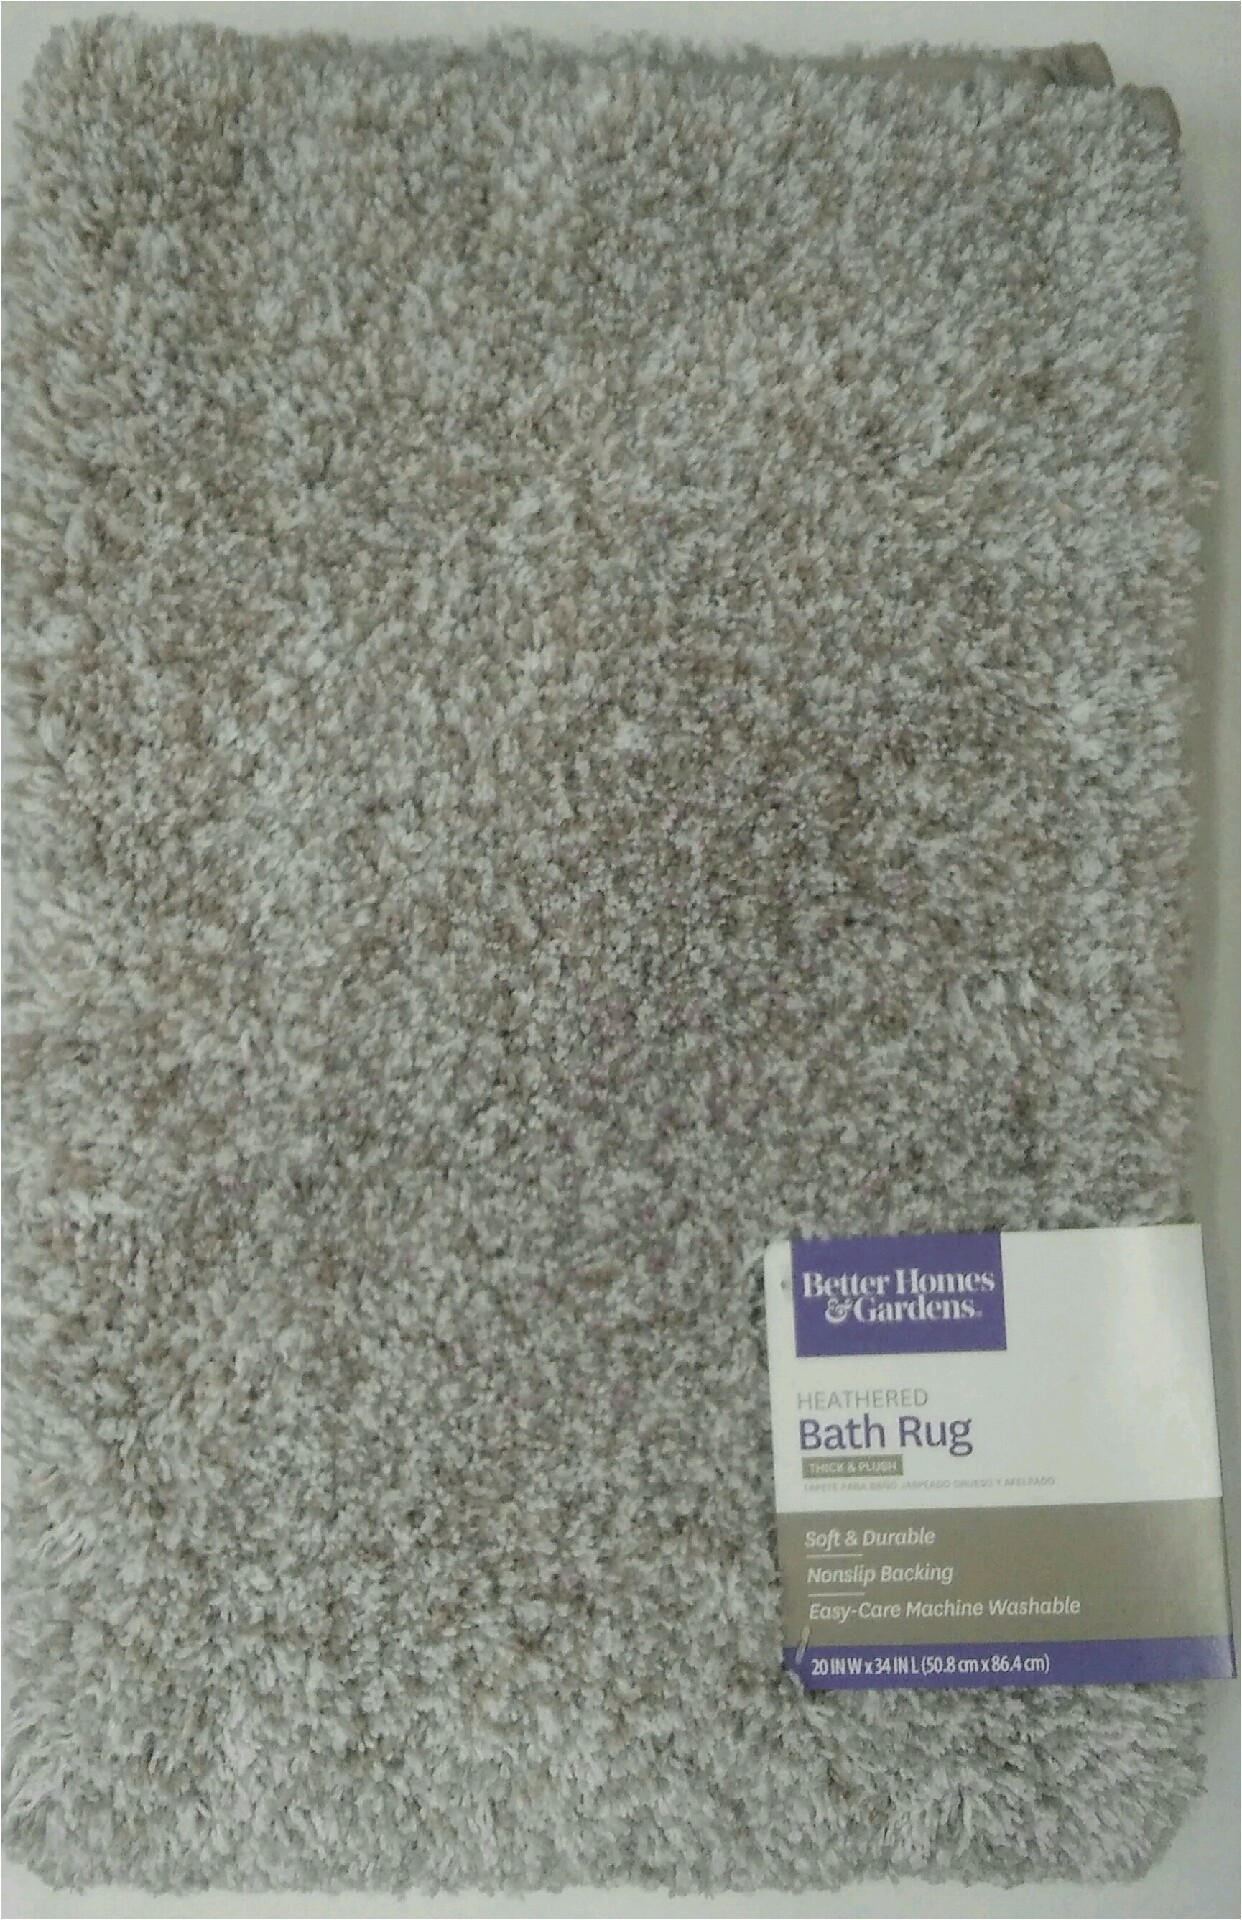 Micro Plush Memory Foam Bath Rug Better Homes and Gardens Thick and Plush Bath Rug 20 X 34 Taupe Splash Heather